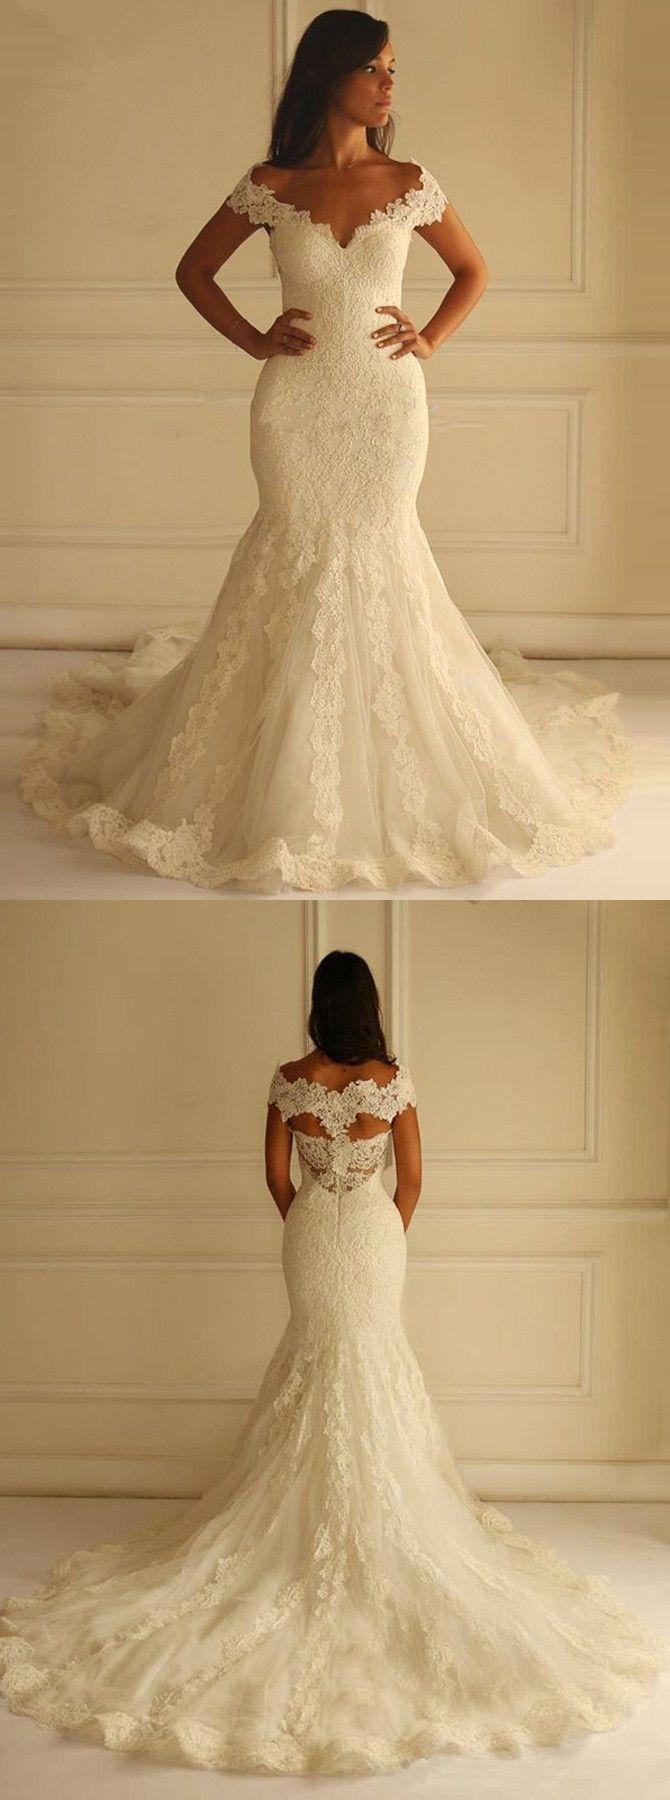 Mariage - Special Off Shoulder Court Train Short Sleeves Mermaid Lace Wedding Dress With Appliques